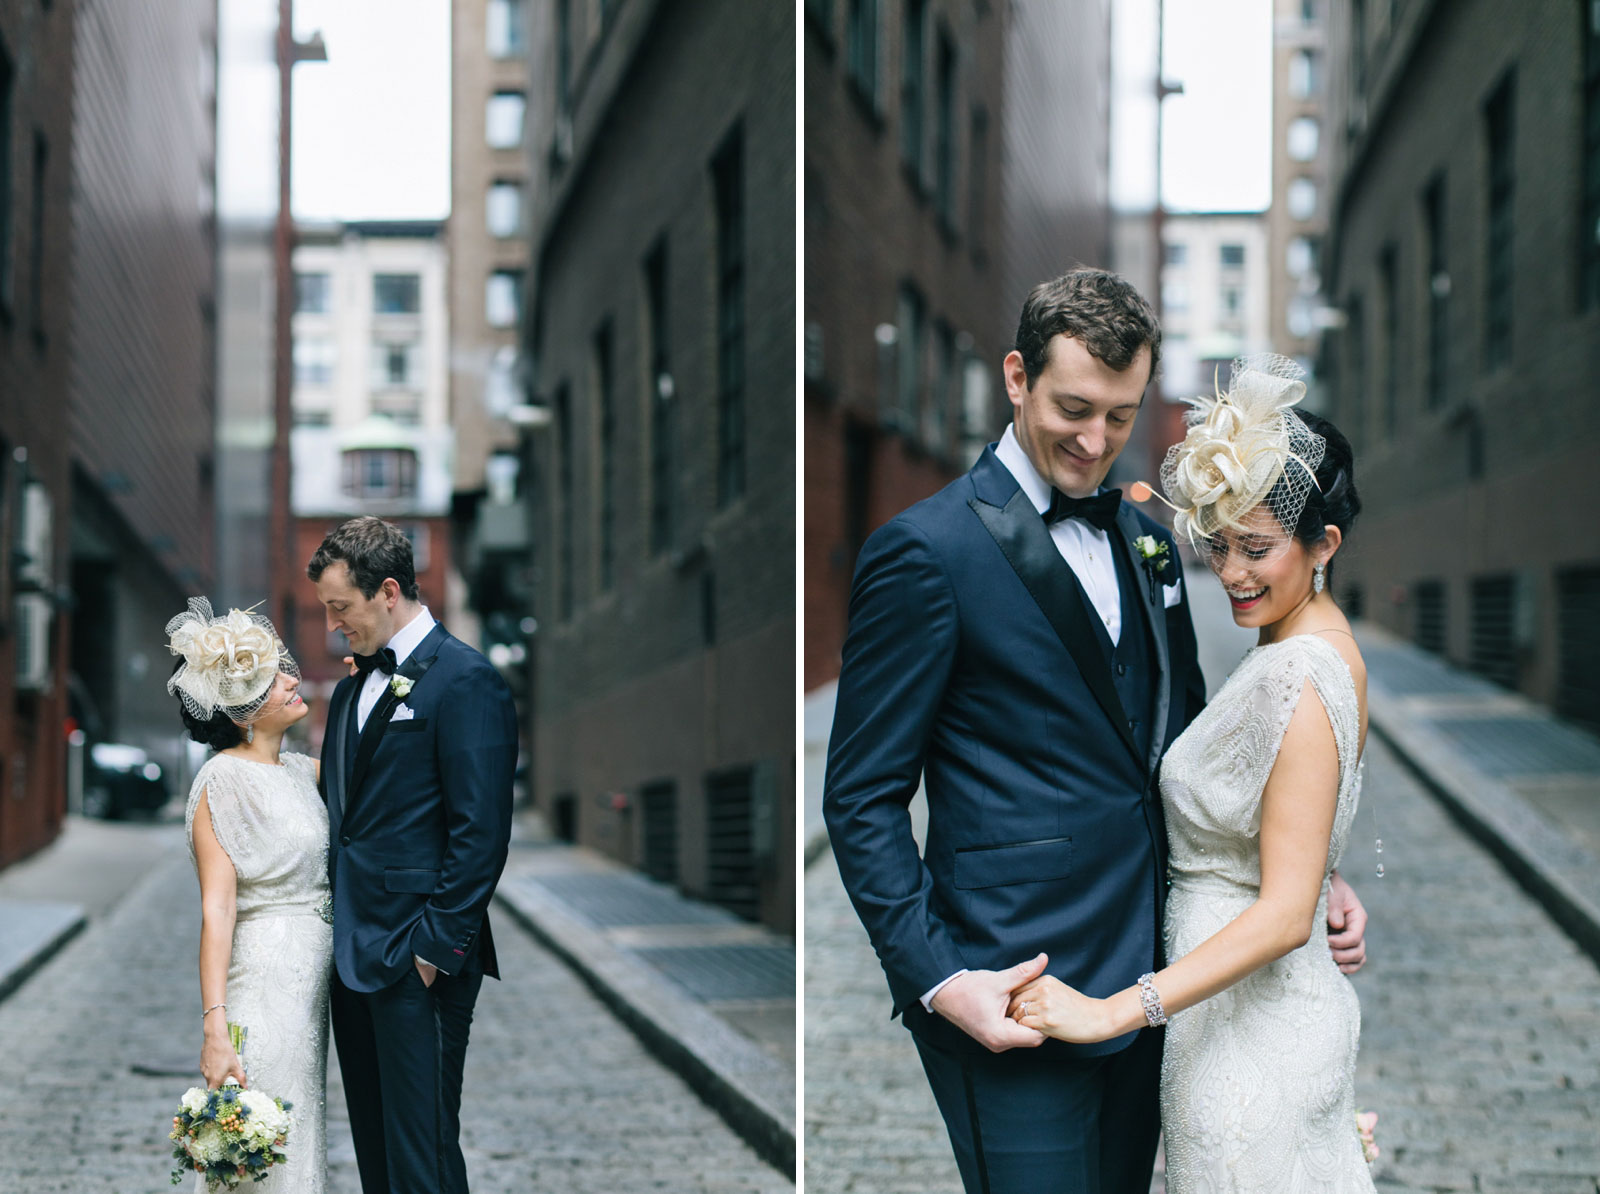 Candid portraits of bride and groom standing in alleyway, black tie navy suit with silk lapel